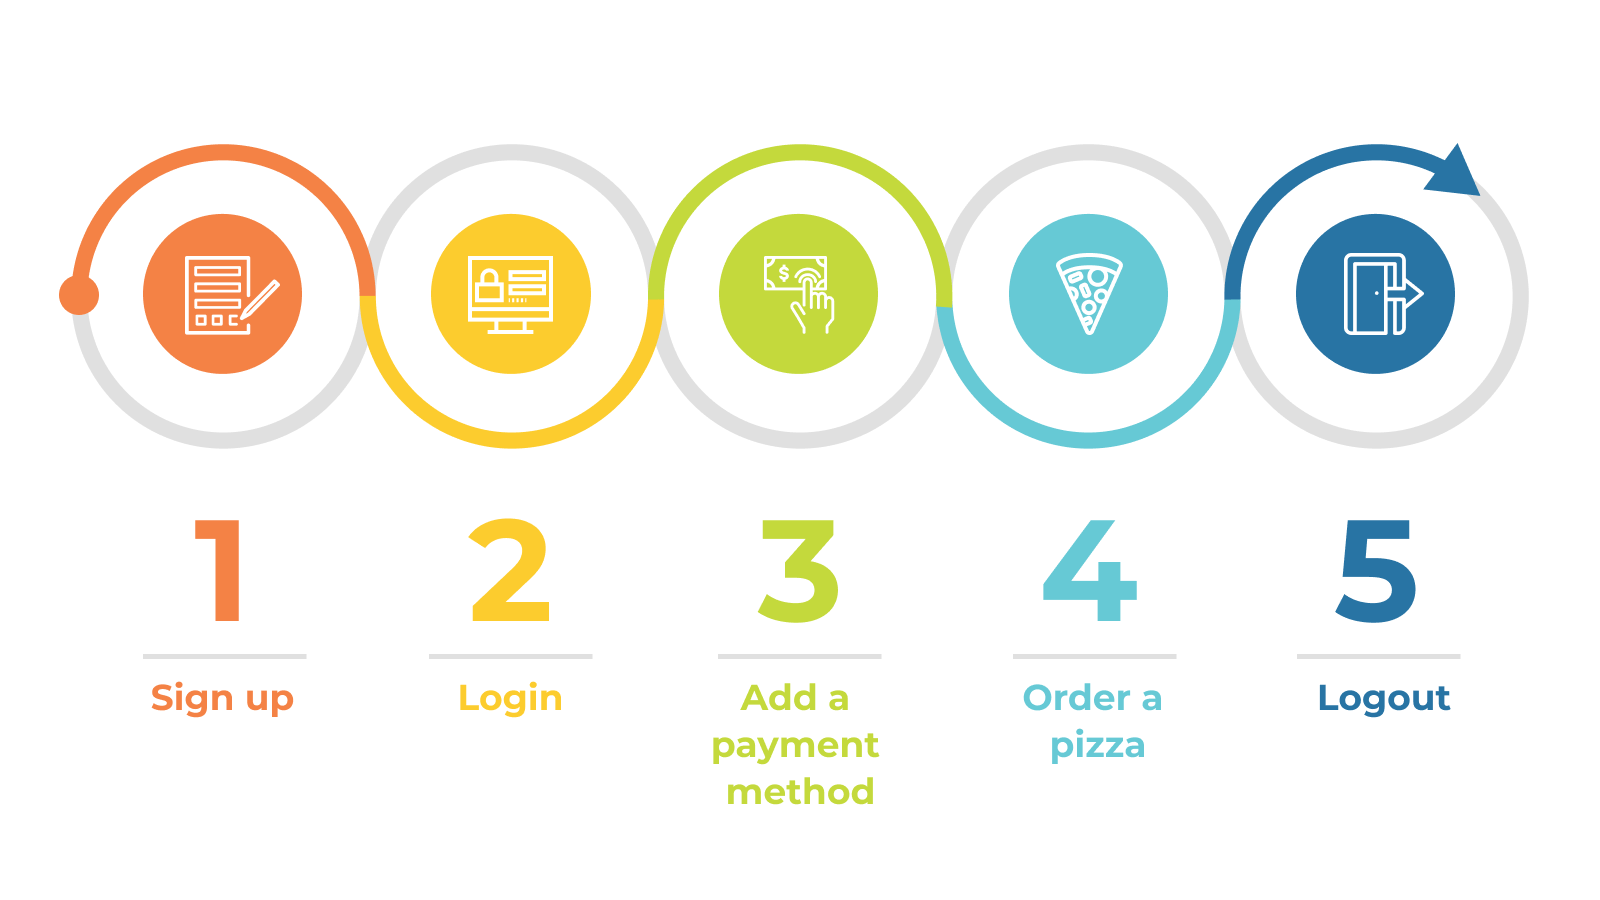 The various stages of a user journey, from sign-up, login, payment, order, and logout